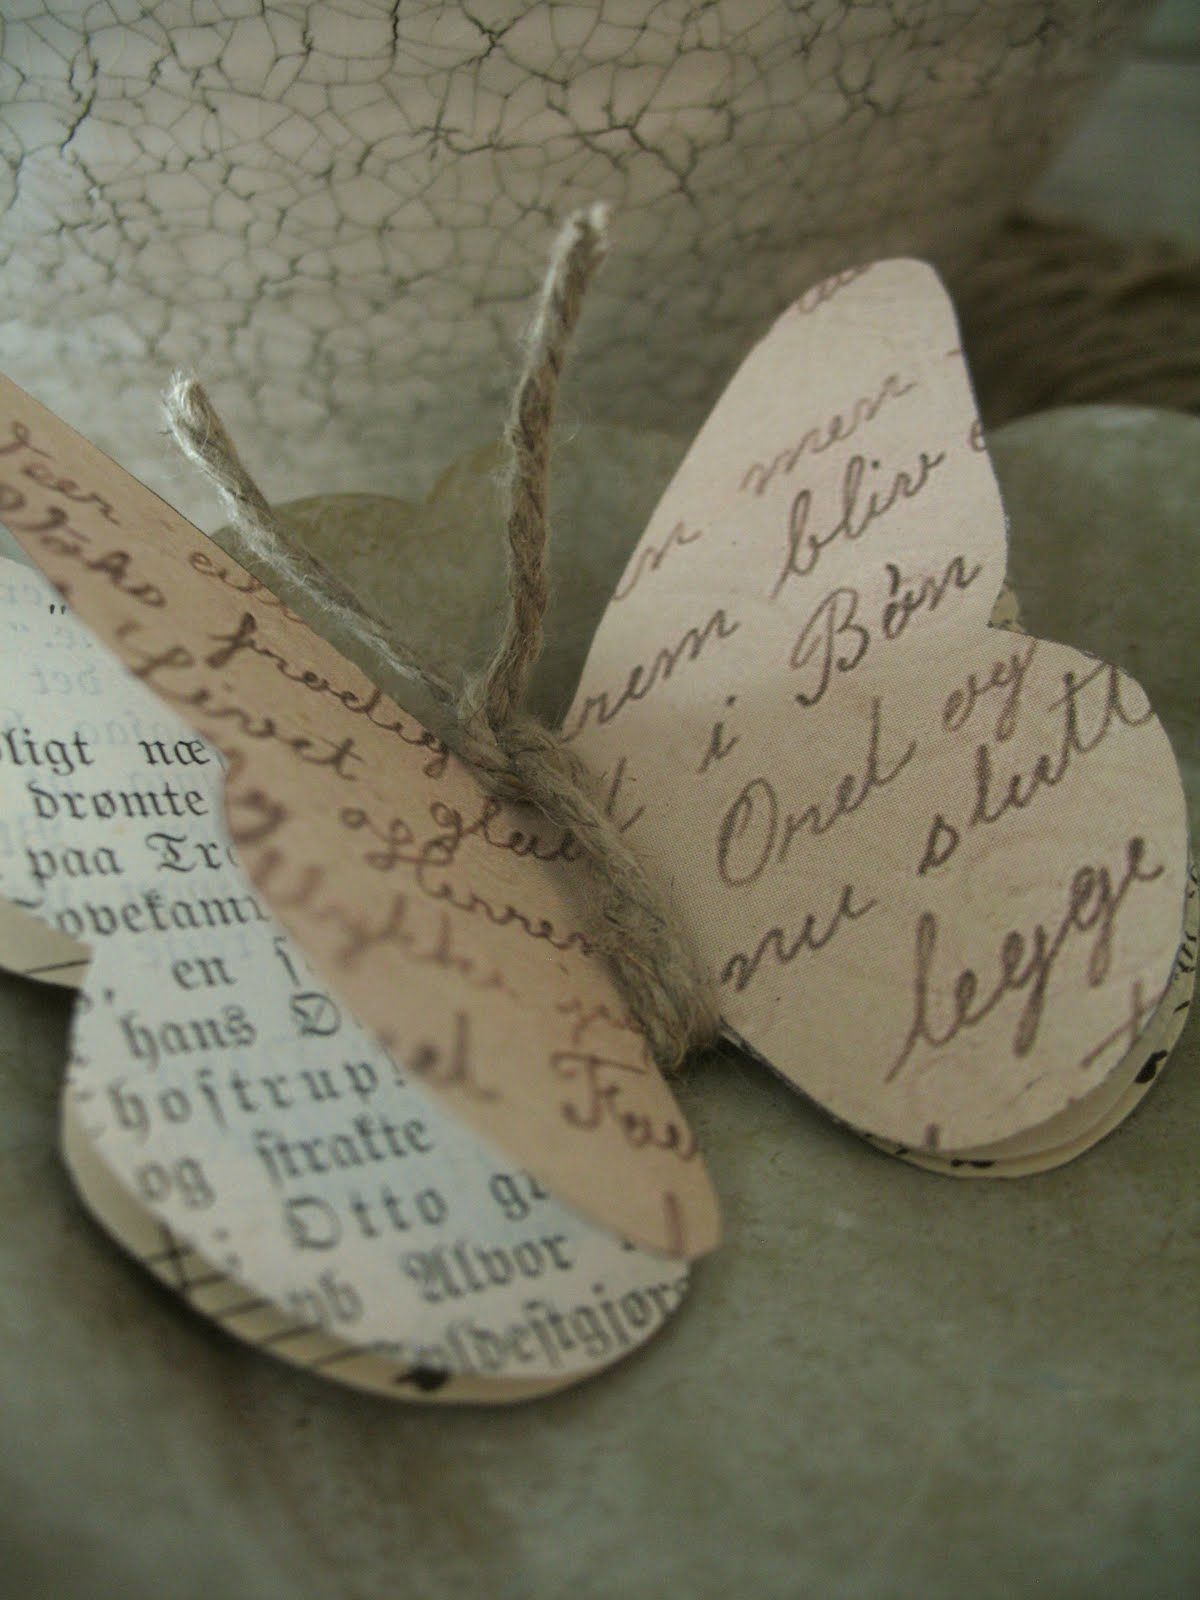 Made from book pages so simple and sweet art crafts paper butterfly from old books letters etc layers of favorite things to put on a card book cover etc mightylinksfo